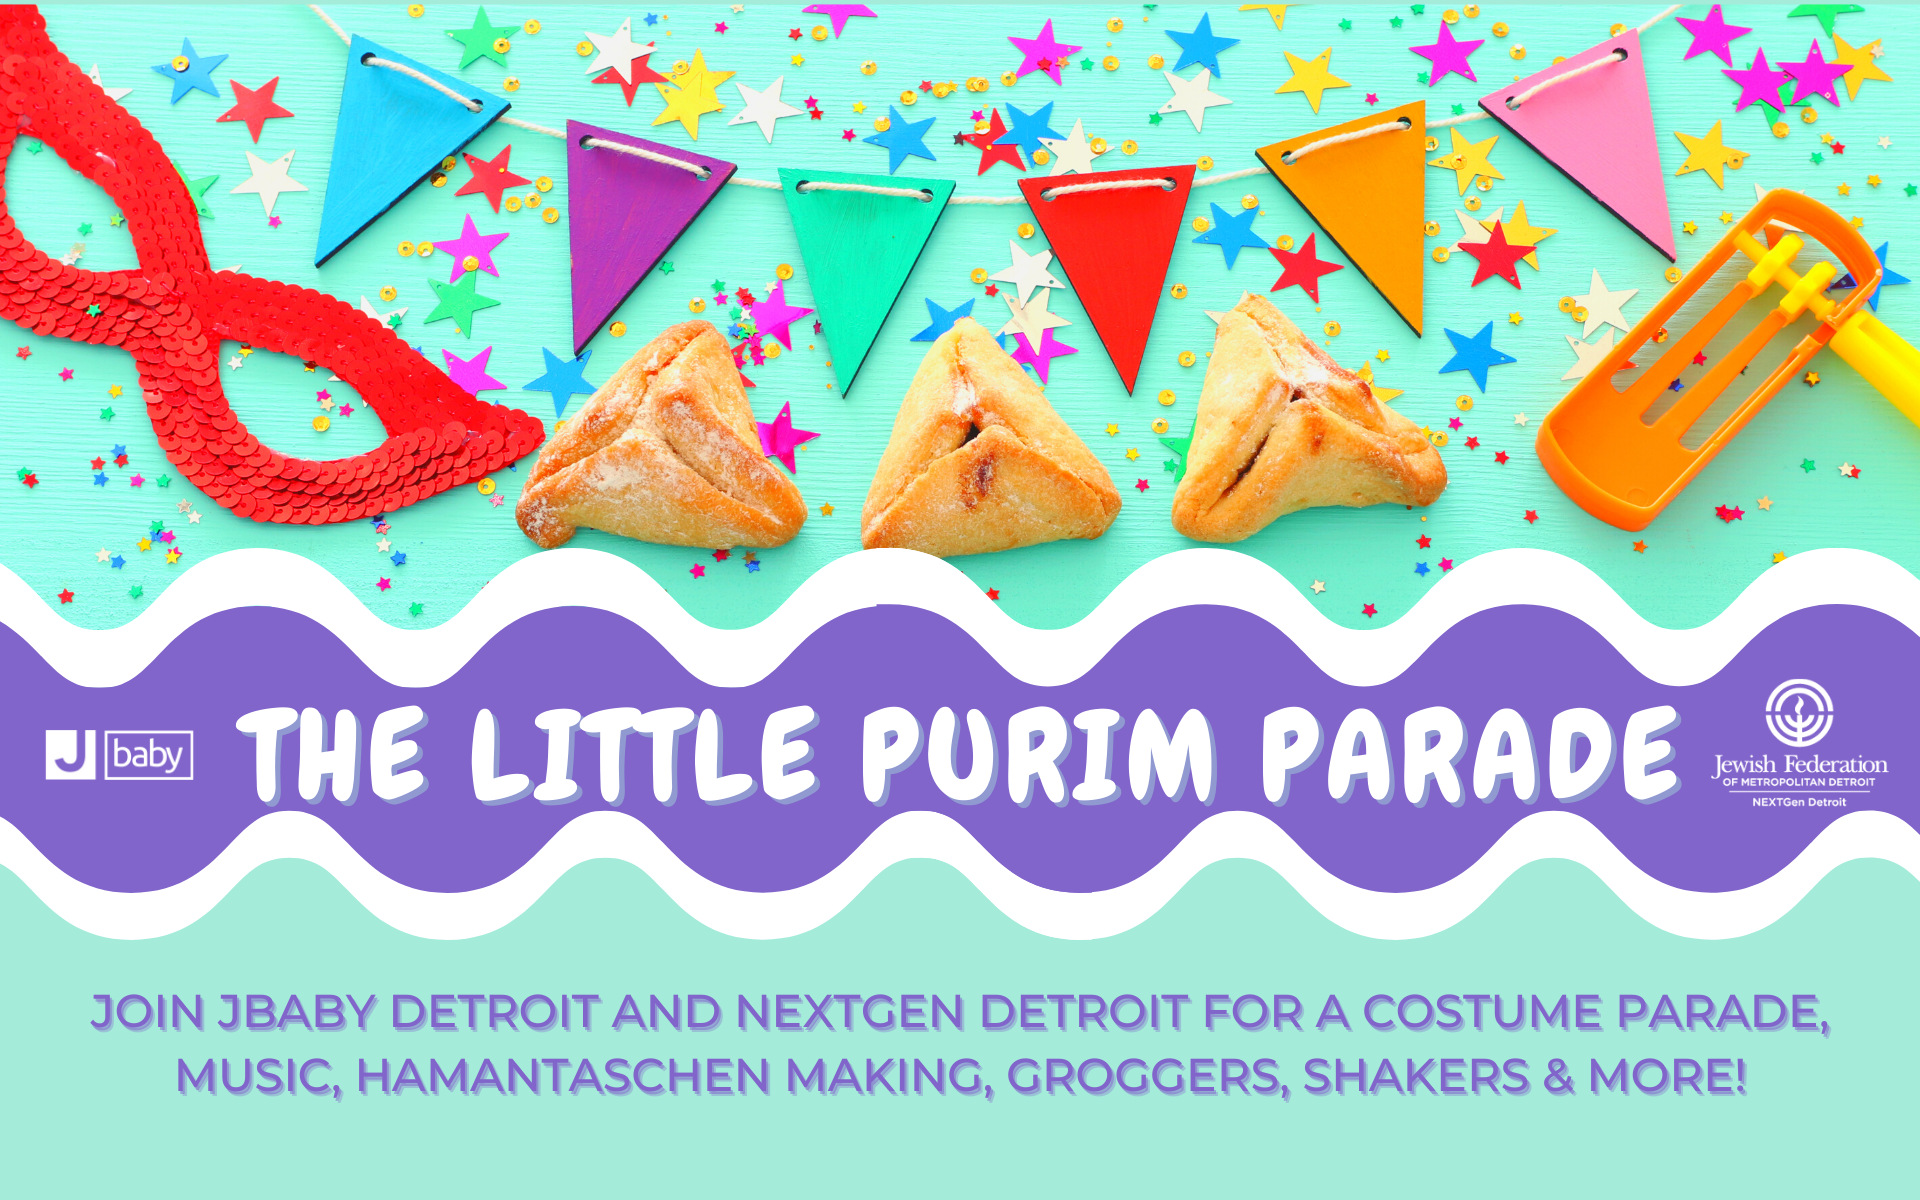 The Little Purim Parade with Jbaby and NextGen Detroit